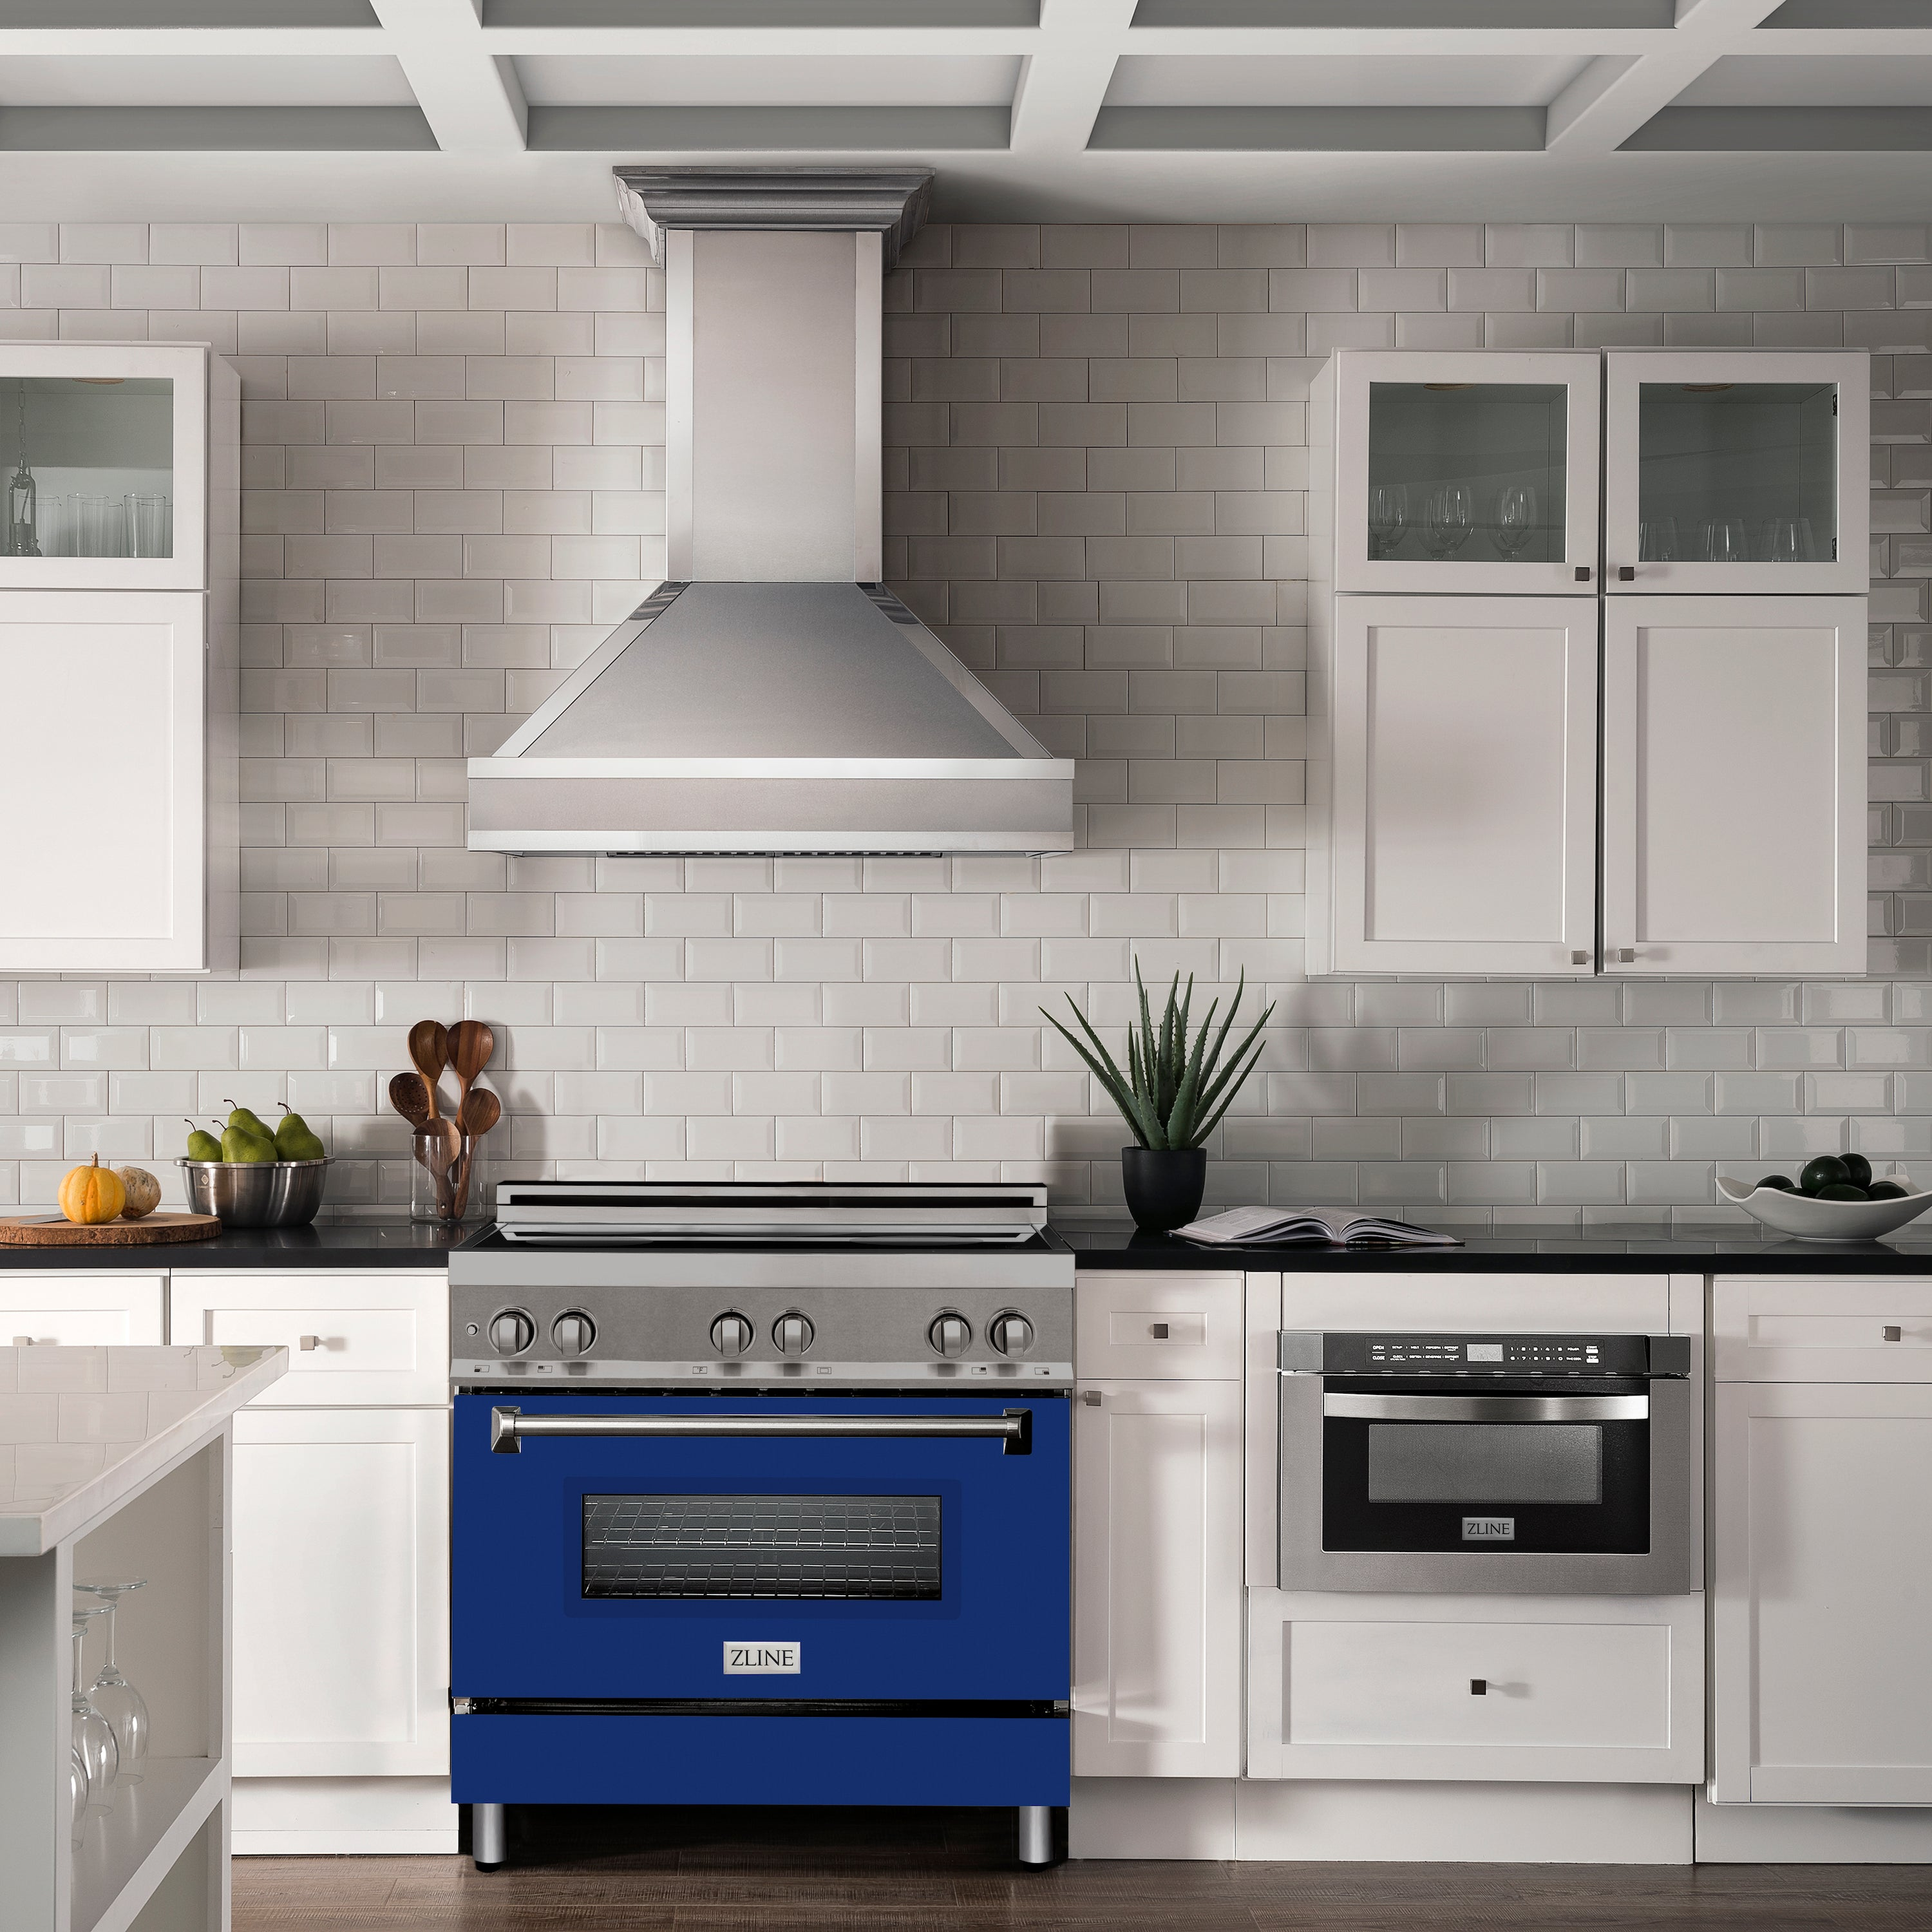 ZLINE Designer Series Convertible Vent Wall Mount Range Hood in DuraSnow® Stainless Steel with Mirror Accents (655MR)